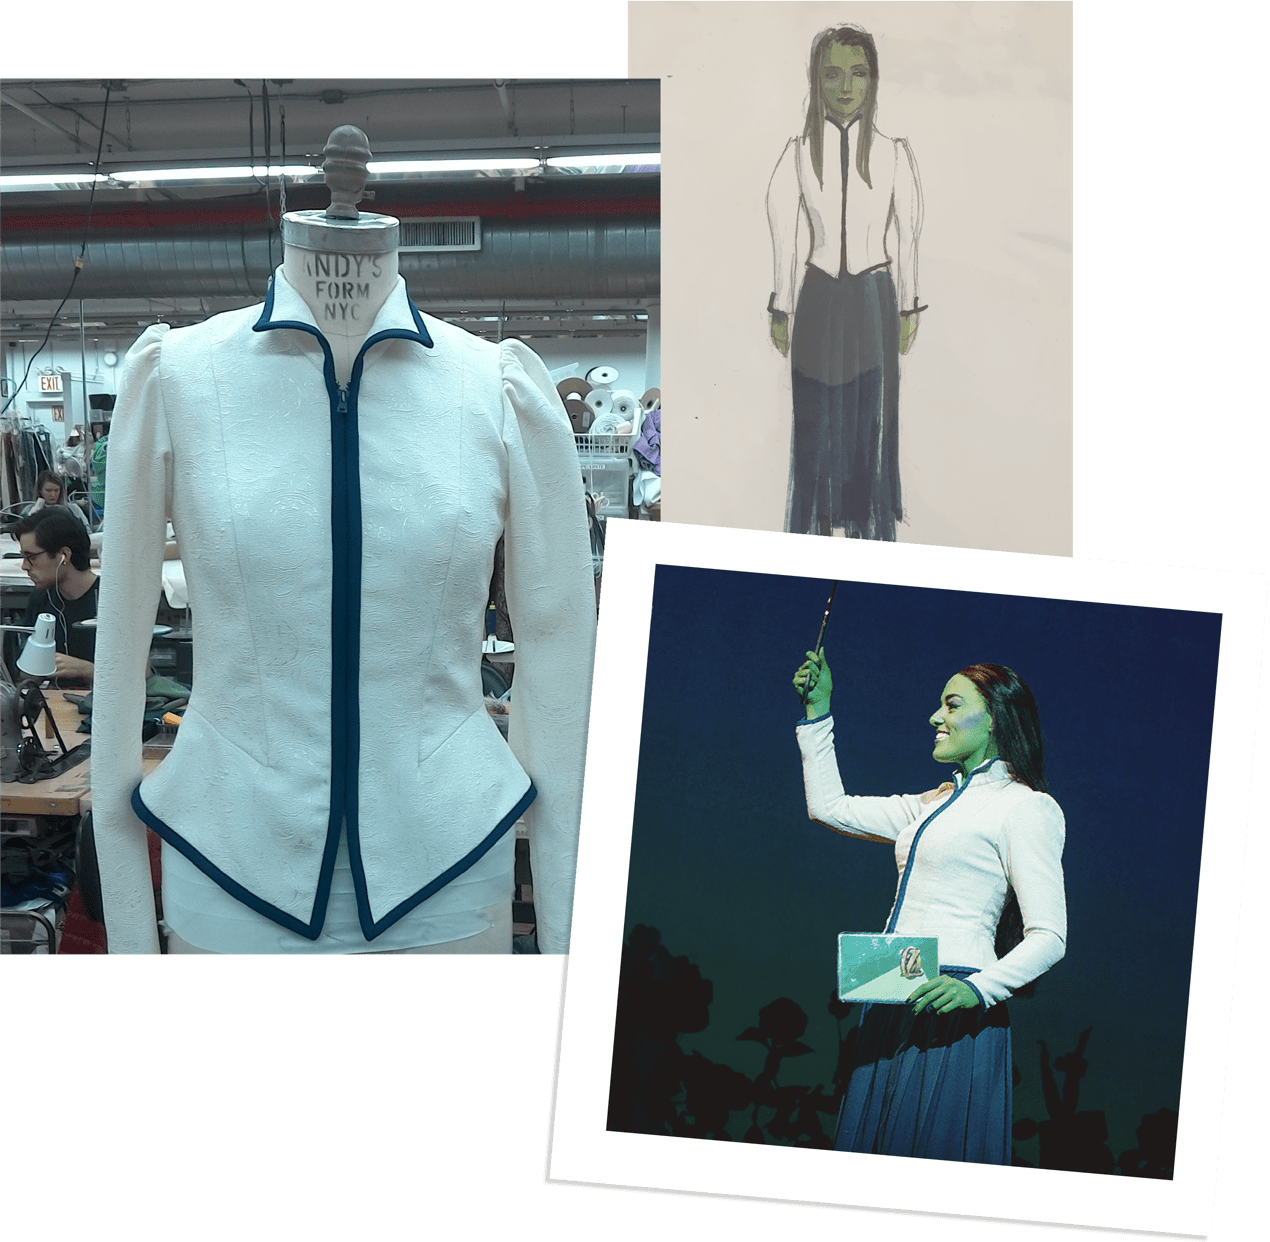 Wicked white jacket process collage